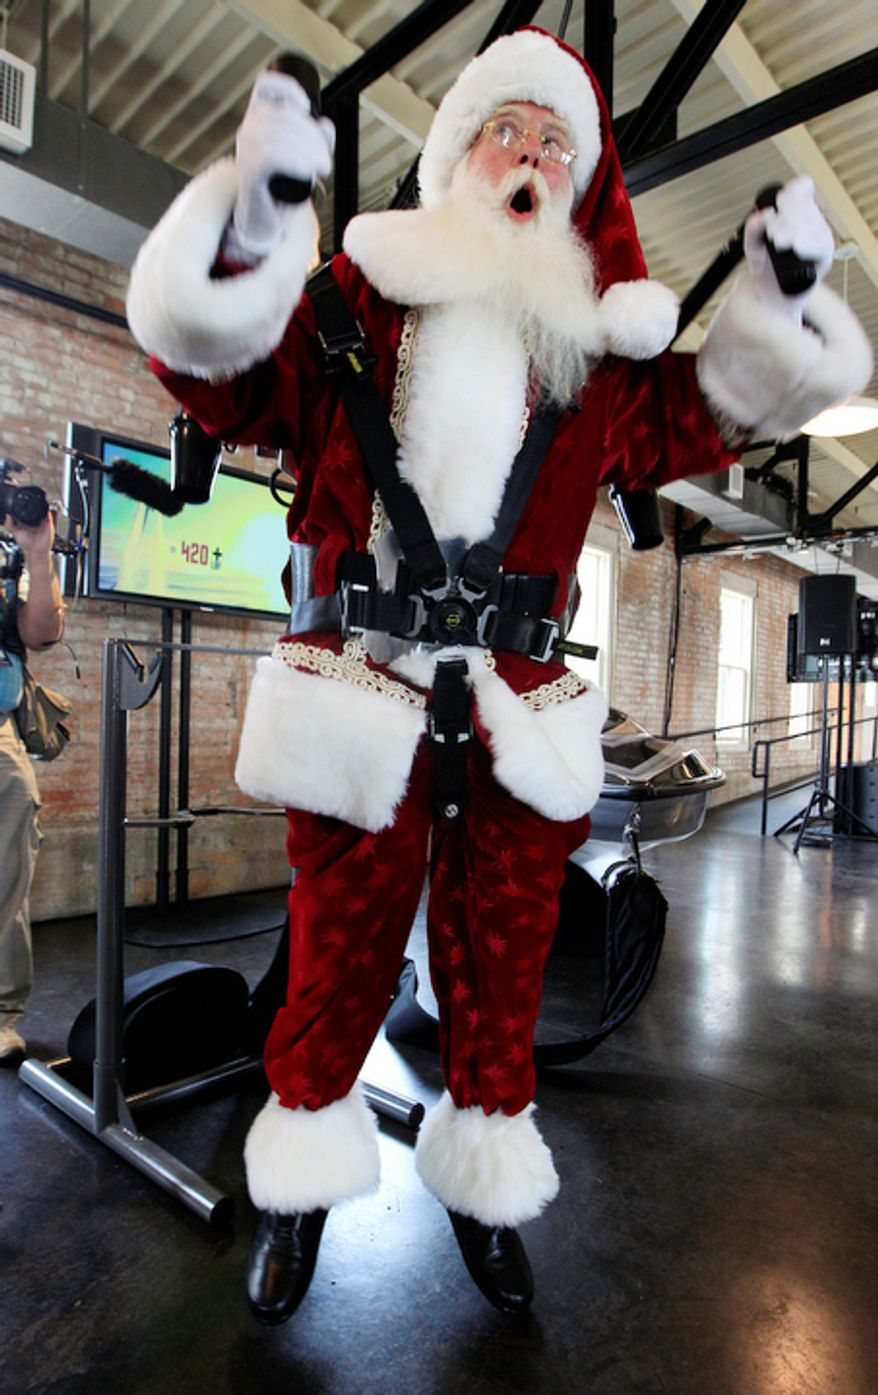 Donning a jetpack, Brady White portrays Santa Claus as he demonstrates gifts during the unveiling of the Neiman Marcus 2012 Christmas Book in Dallas, Tuesday, Oct. 9, 2012.  The Jetlev R200 is priced at $99,500. (AP Photo/LM Otero)